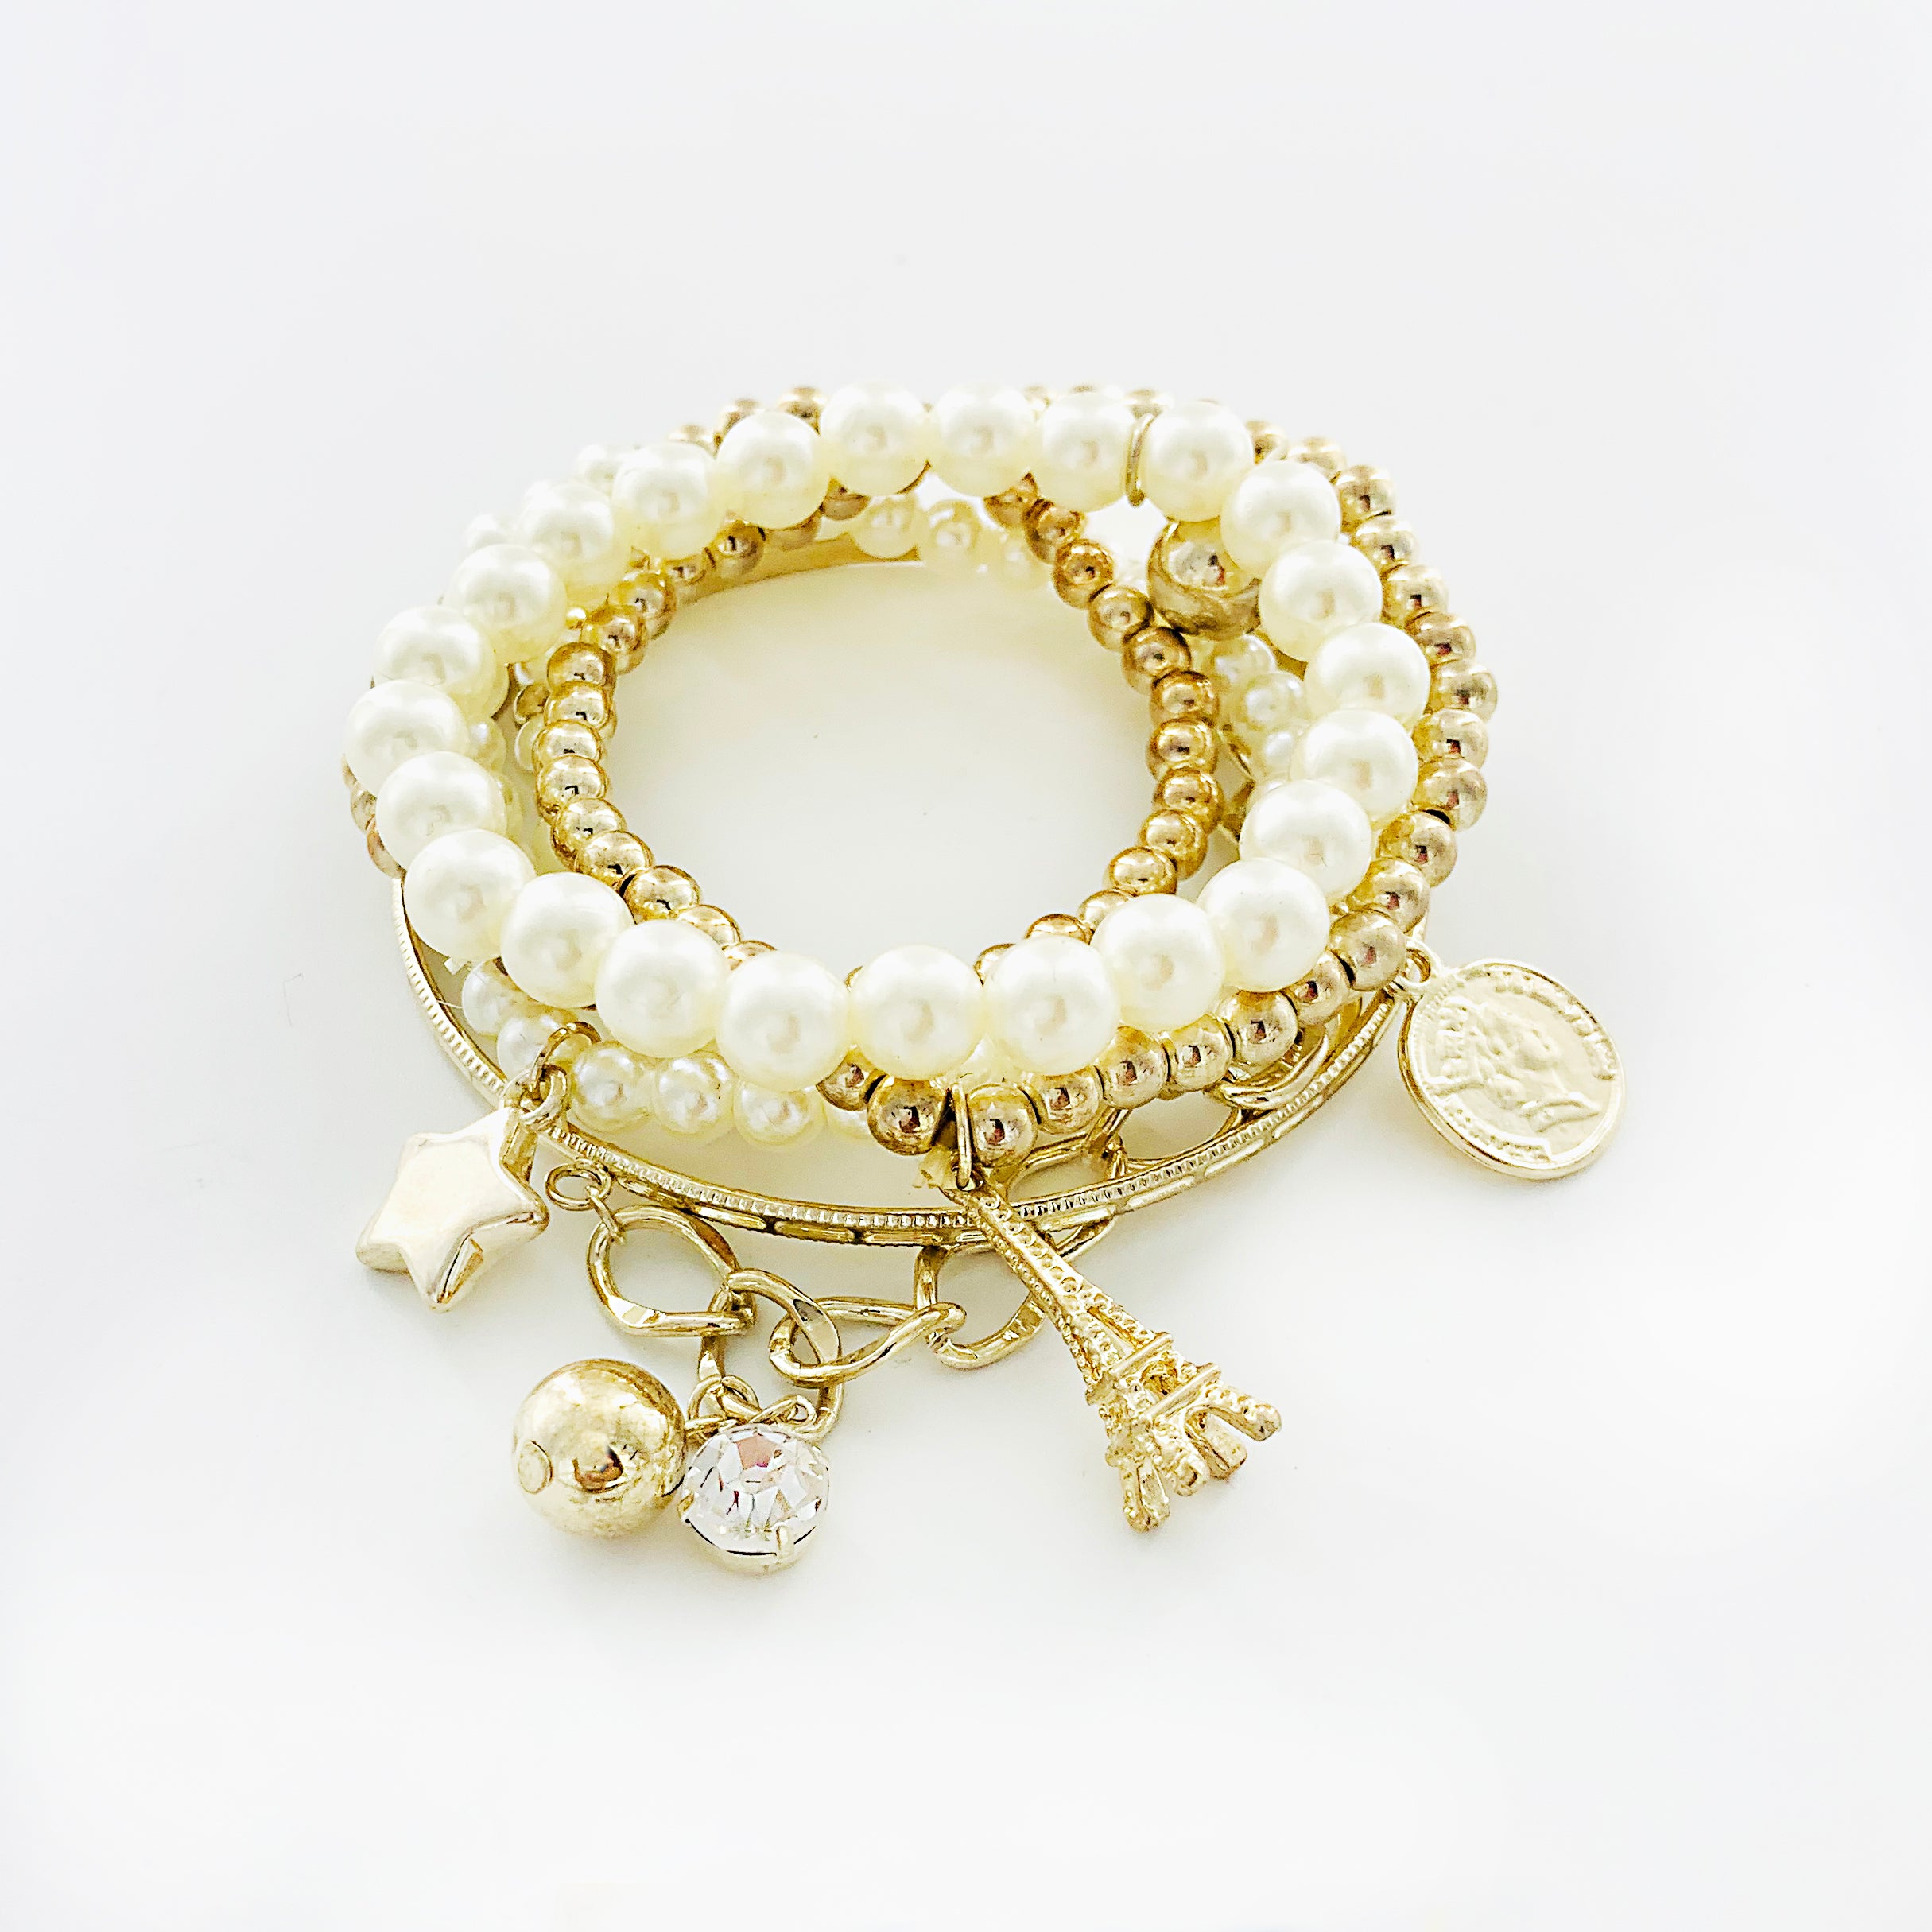 Pearl and gold bracelets with Paris and star Charms